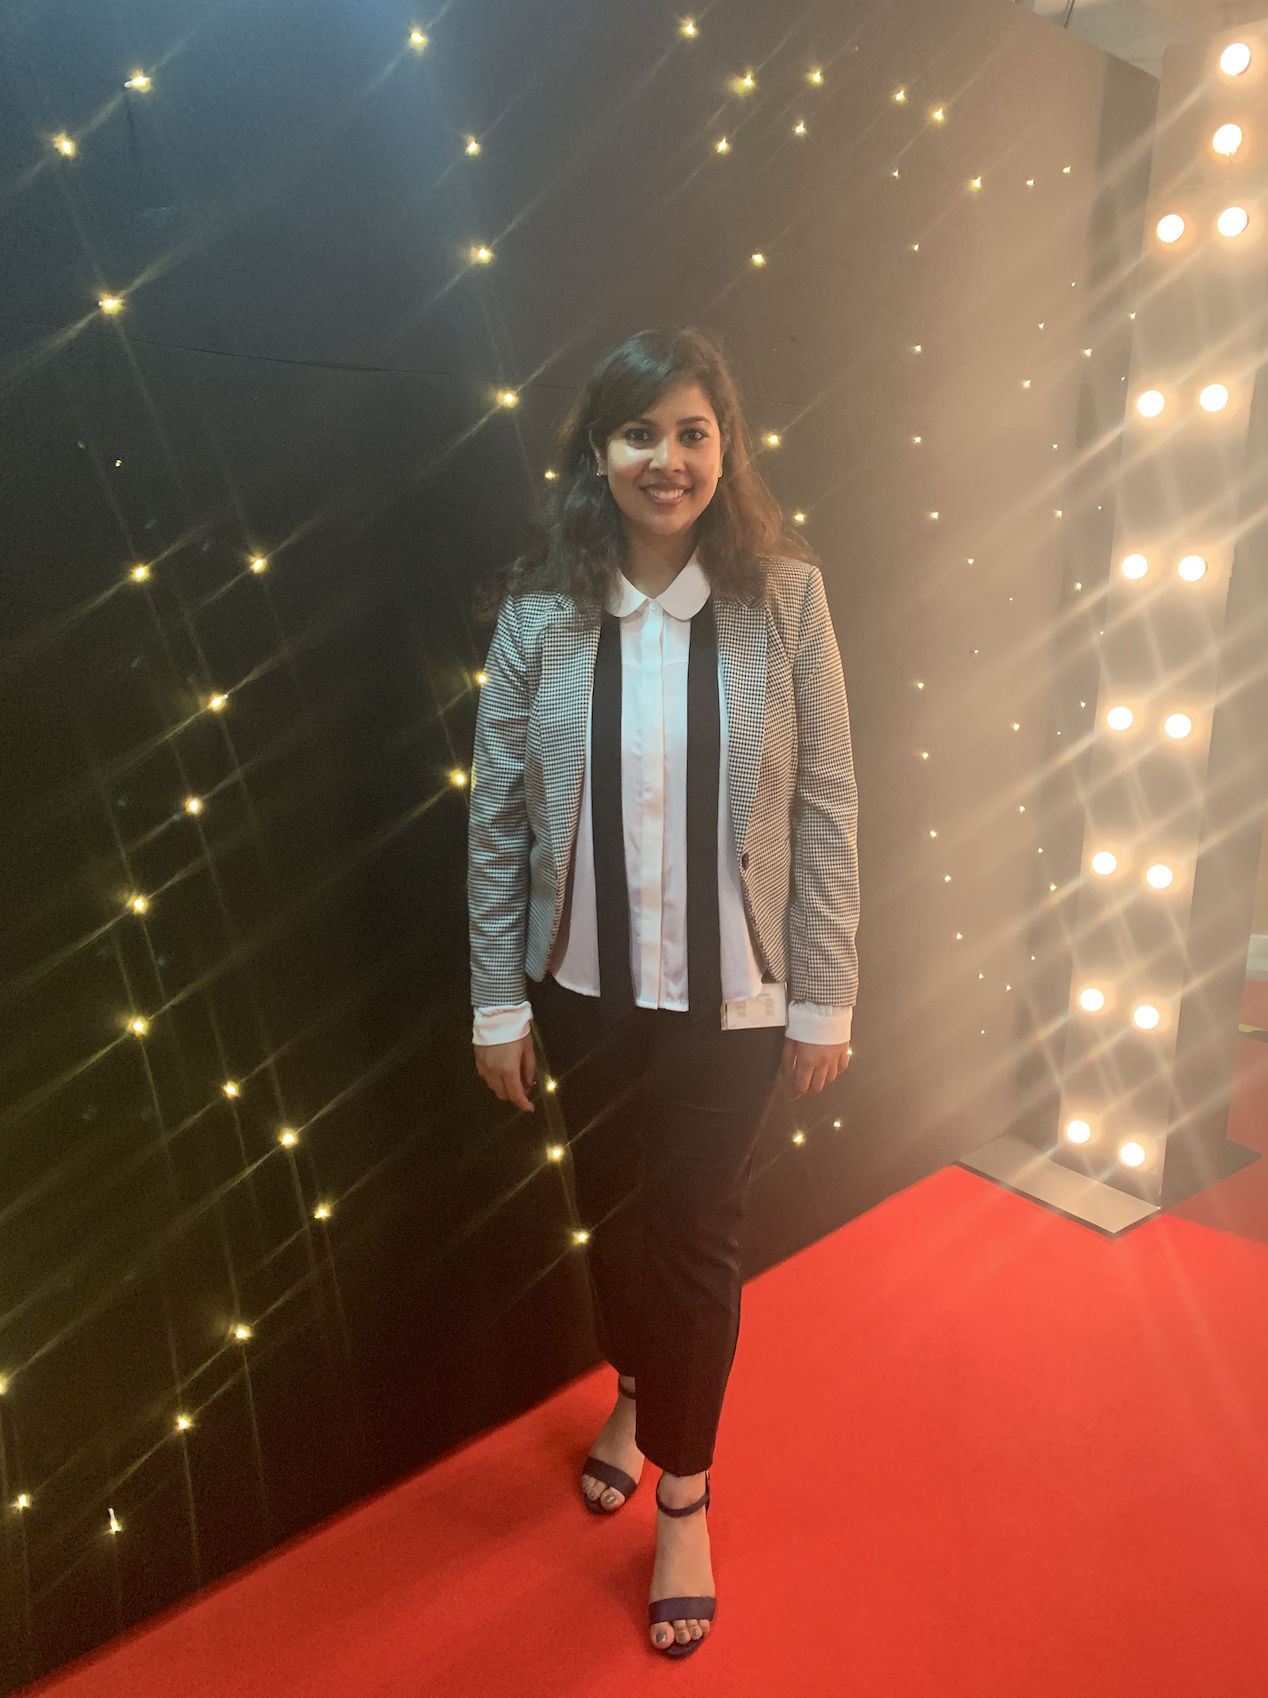 Nikita stands in front of a wall of lights at an event on top of a red carpet.